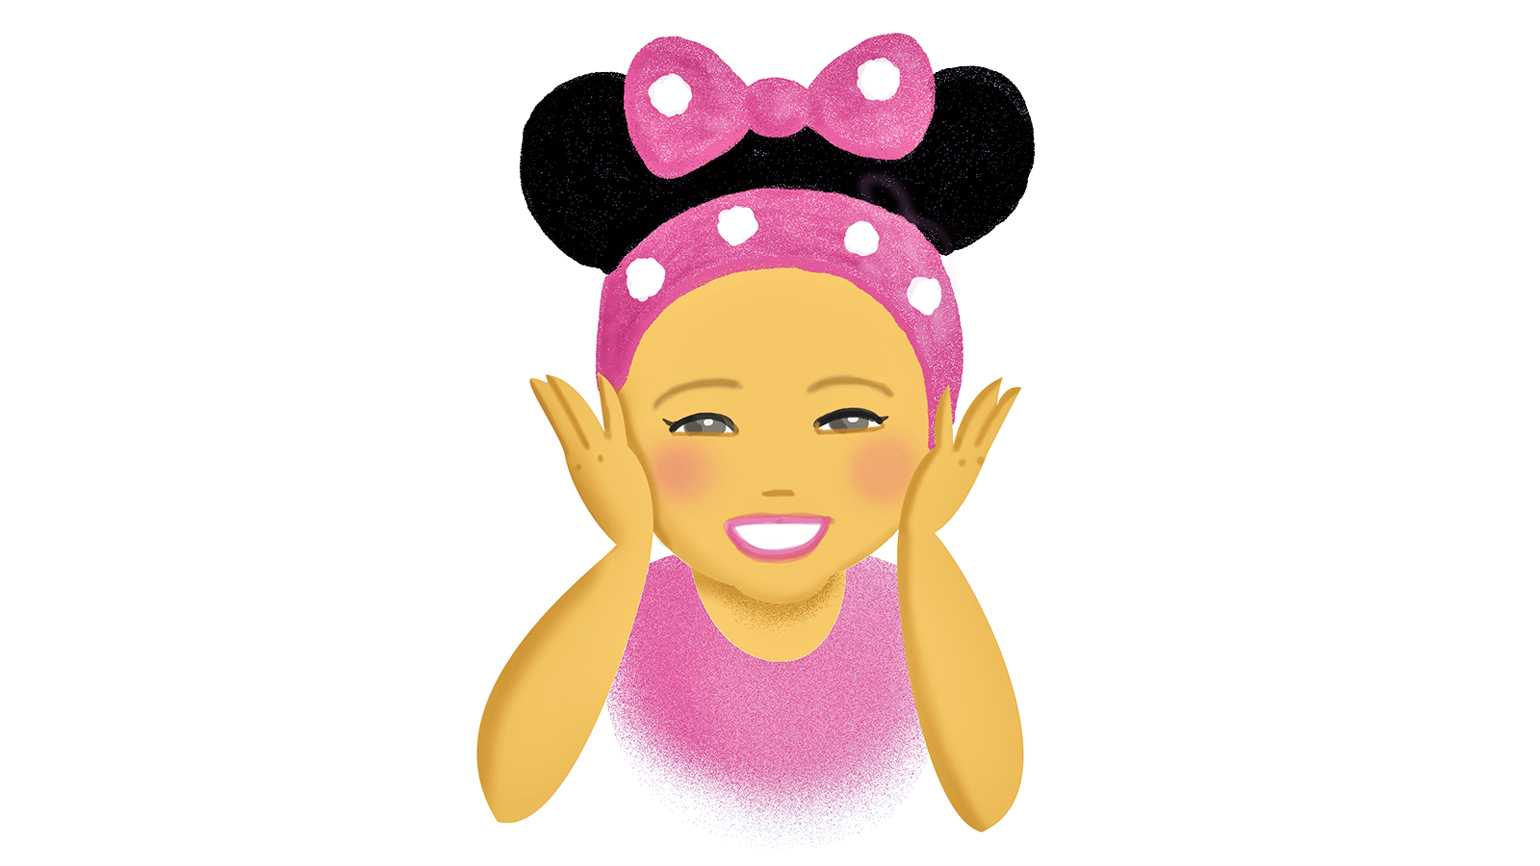 An illustration of a happy girl wearing mouse ears; Illustration by Coco Masuda